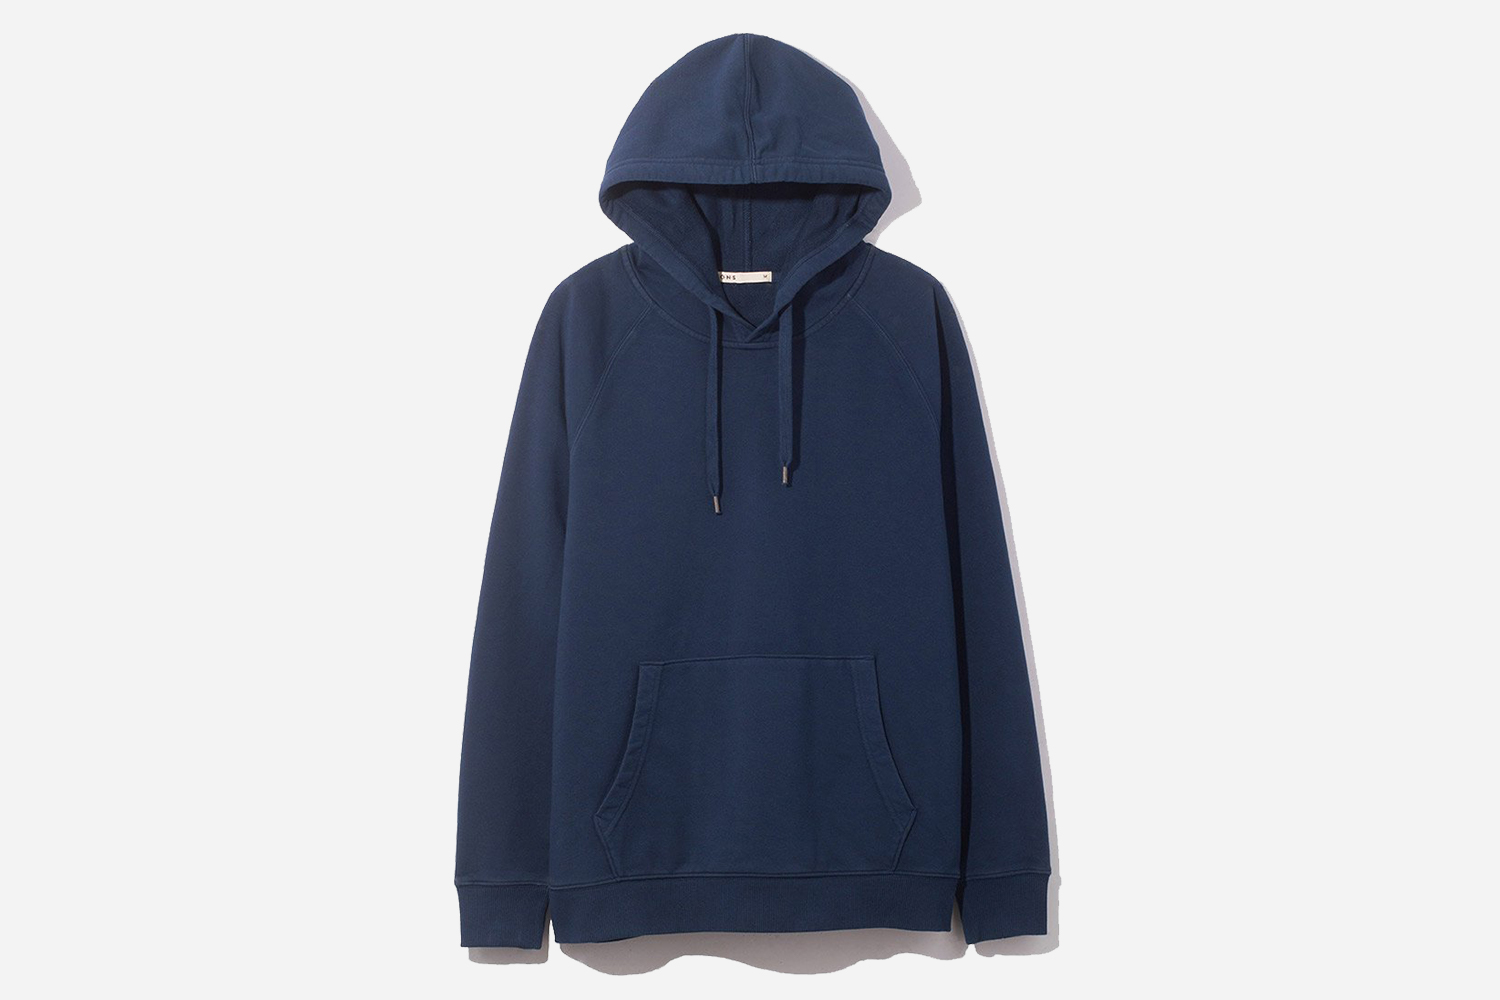 O.N.S Clothing French Terry Hoodie